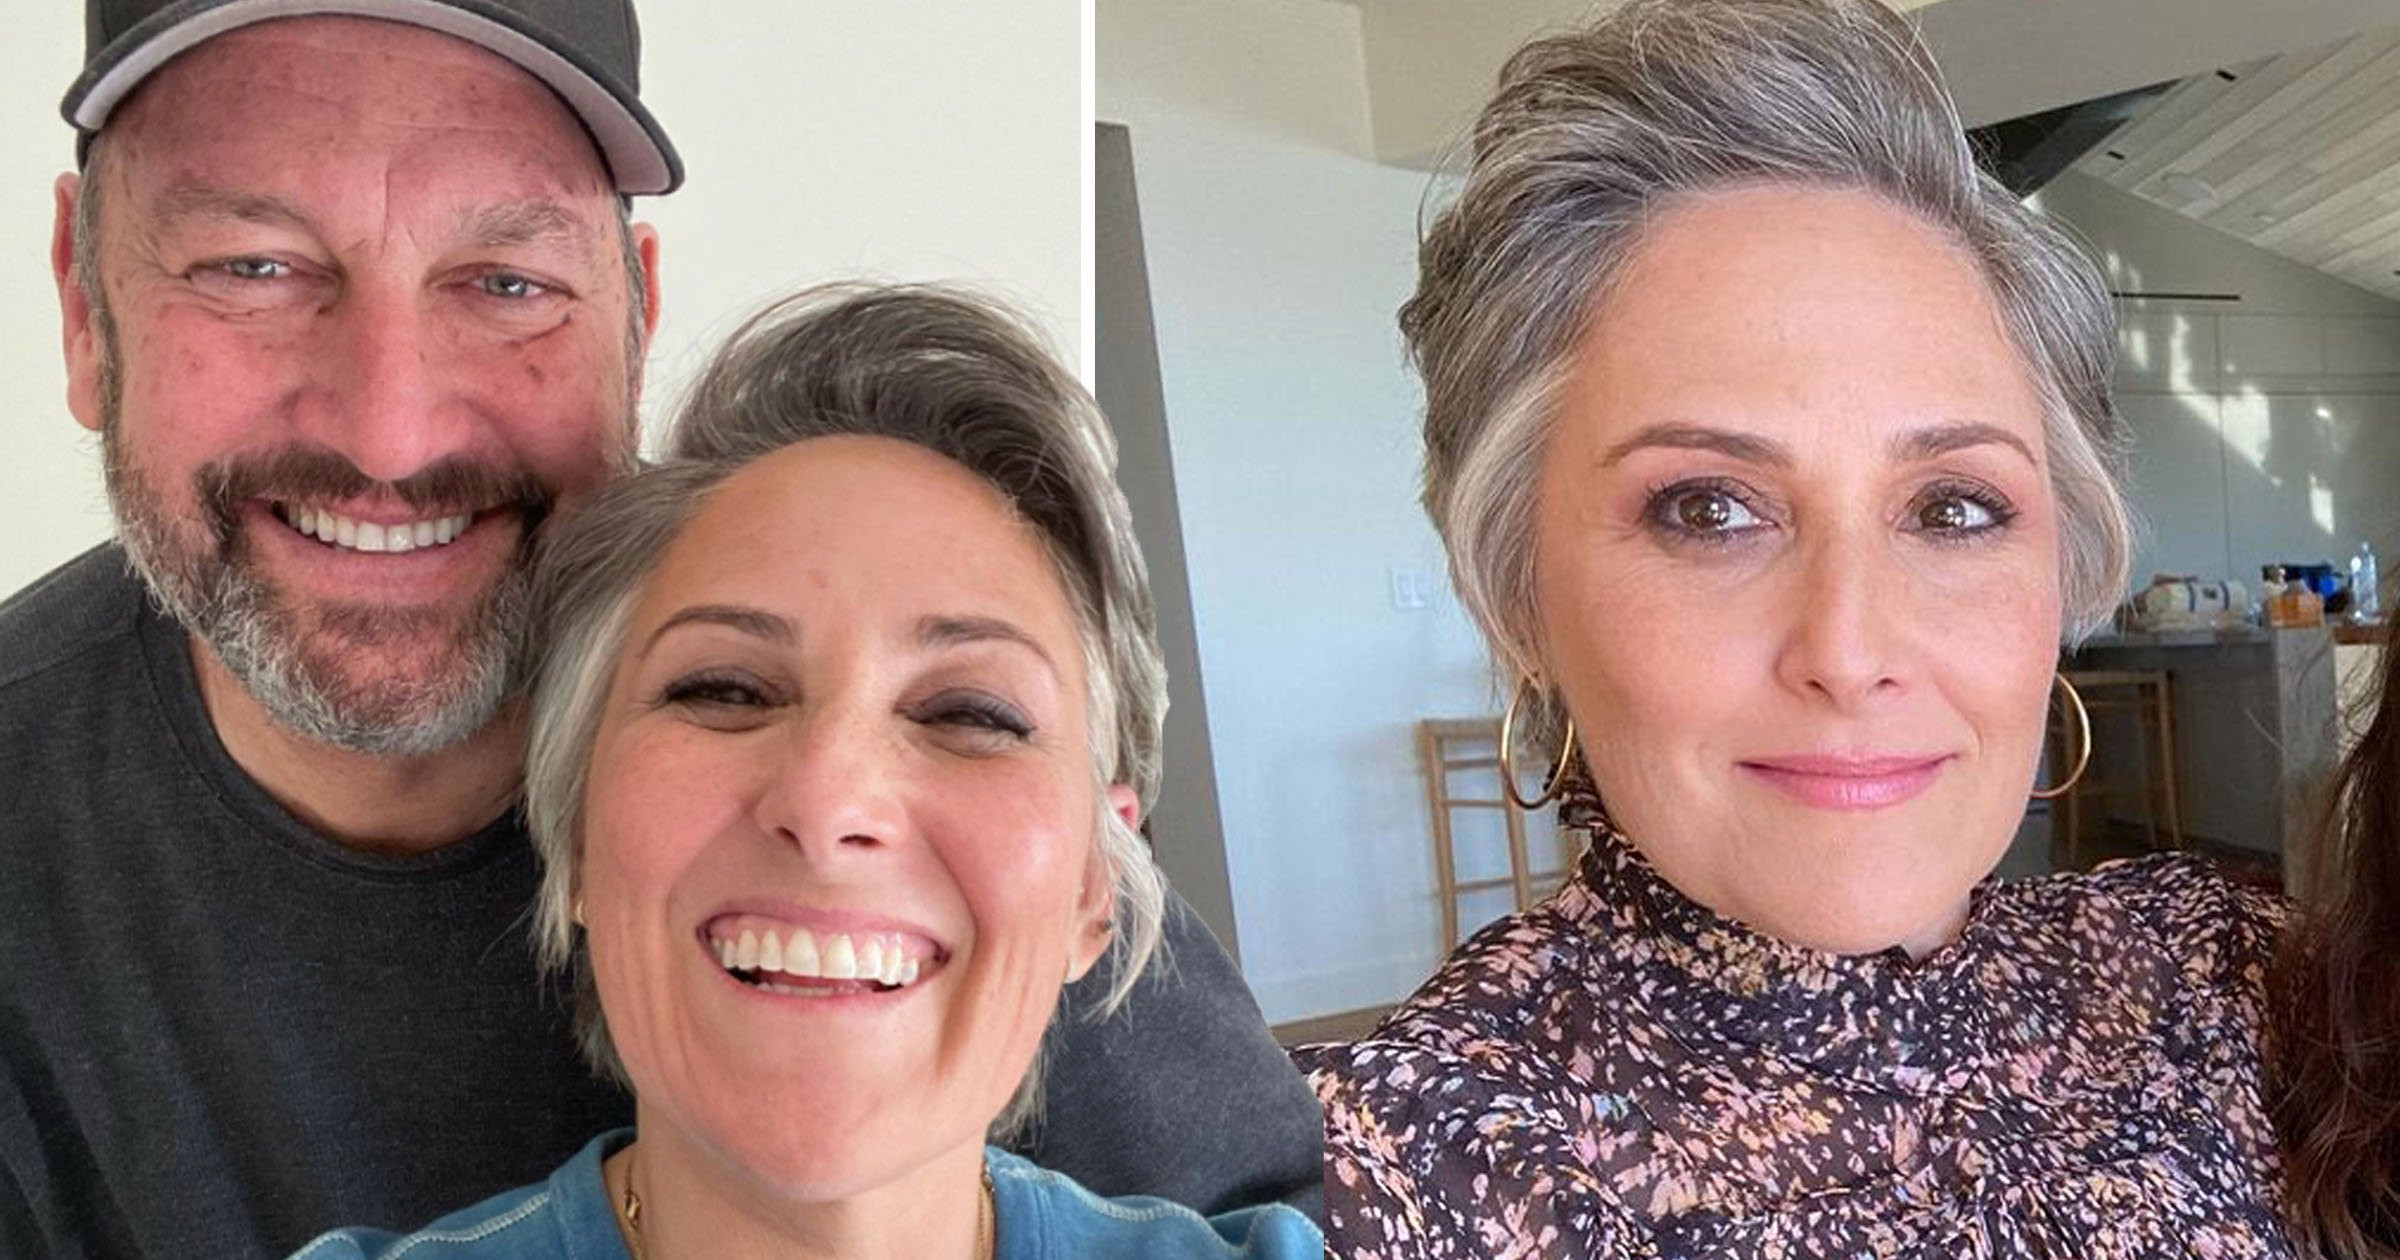 Ricki Lake confirms engagement to boyfriend Ross Burningham after year of dating: 'He is my person'